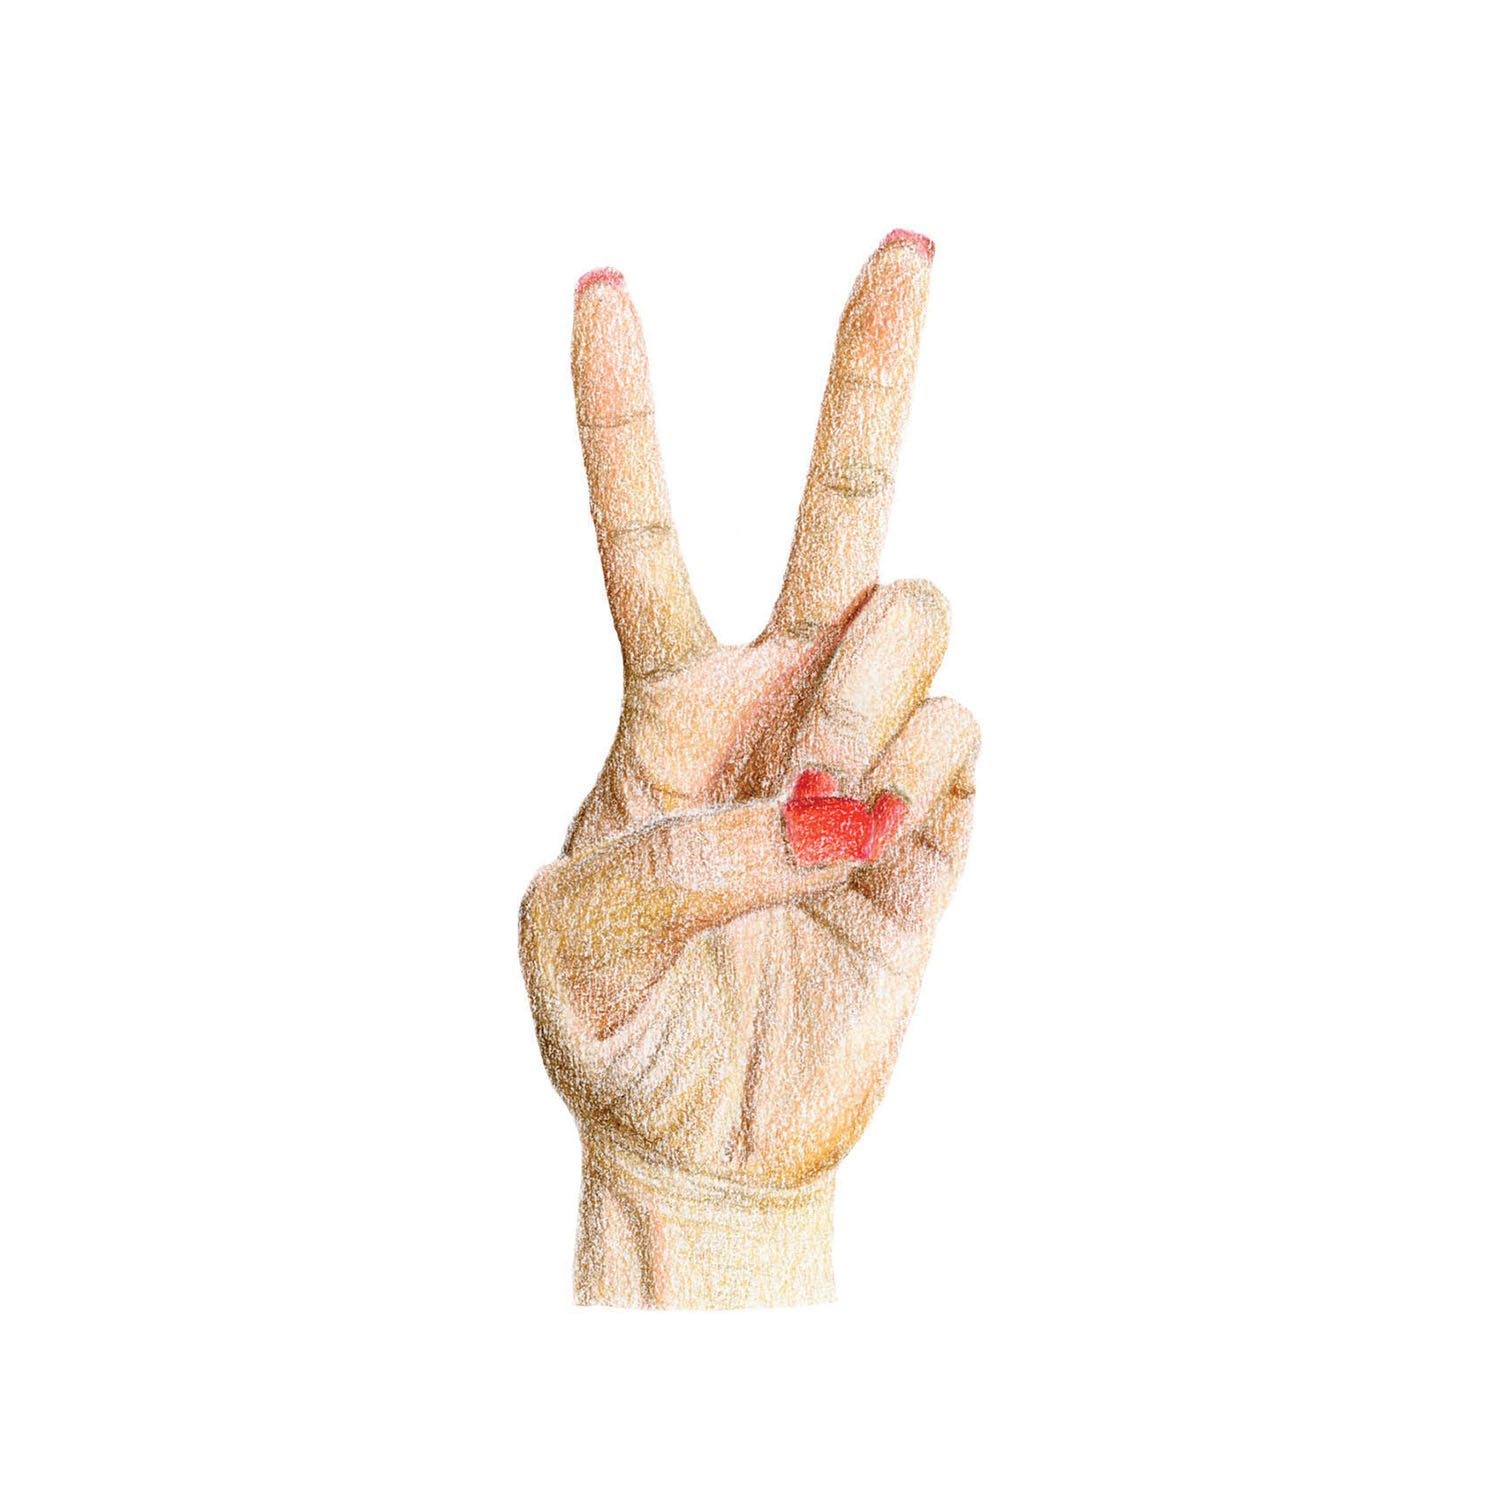 Gallery_Peace Sign.jpg